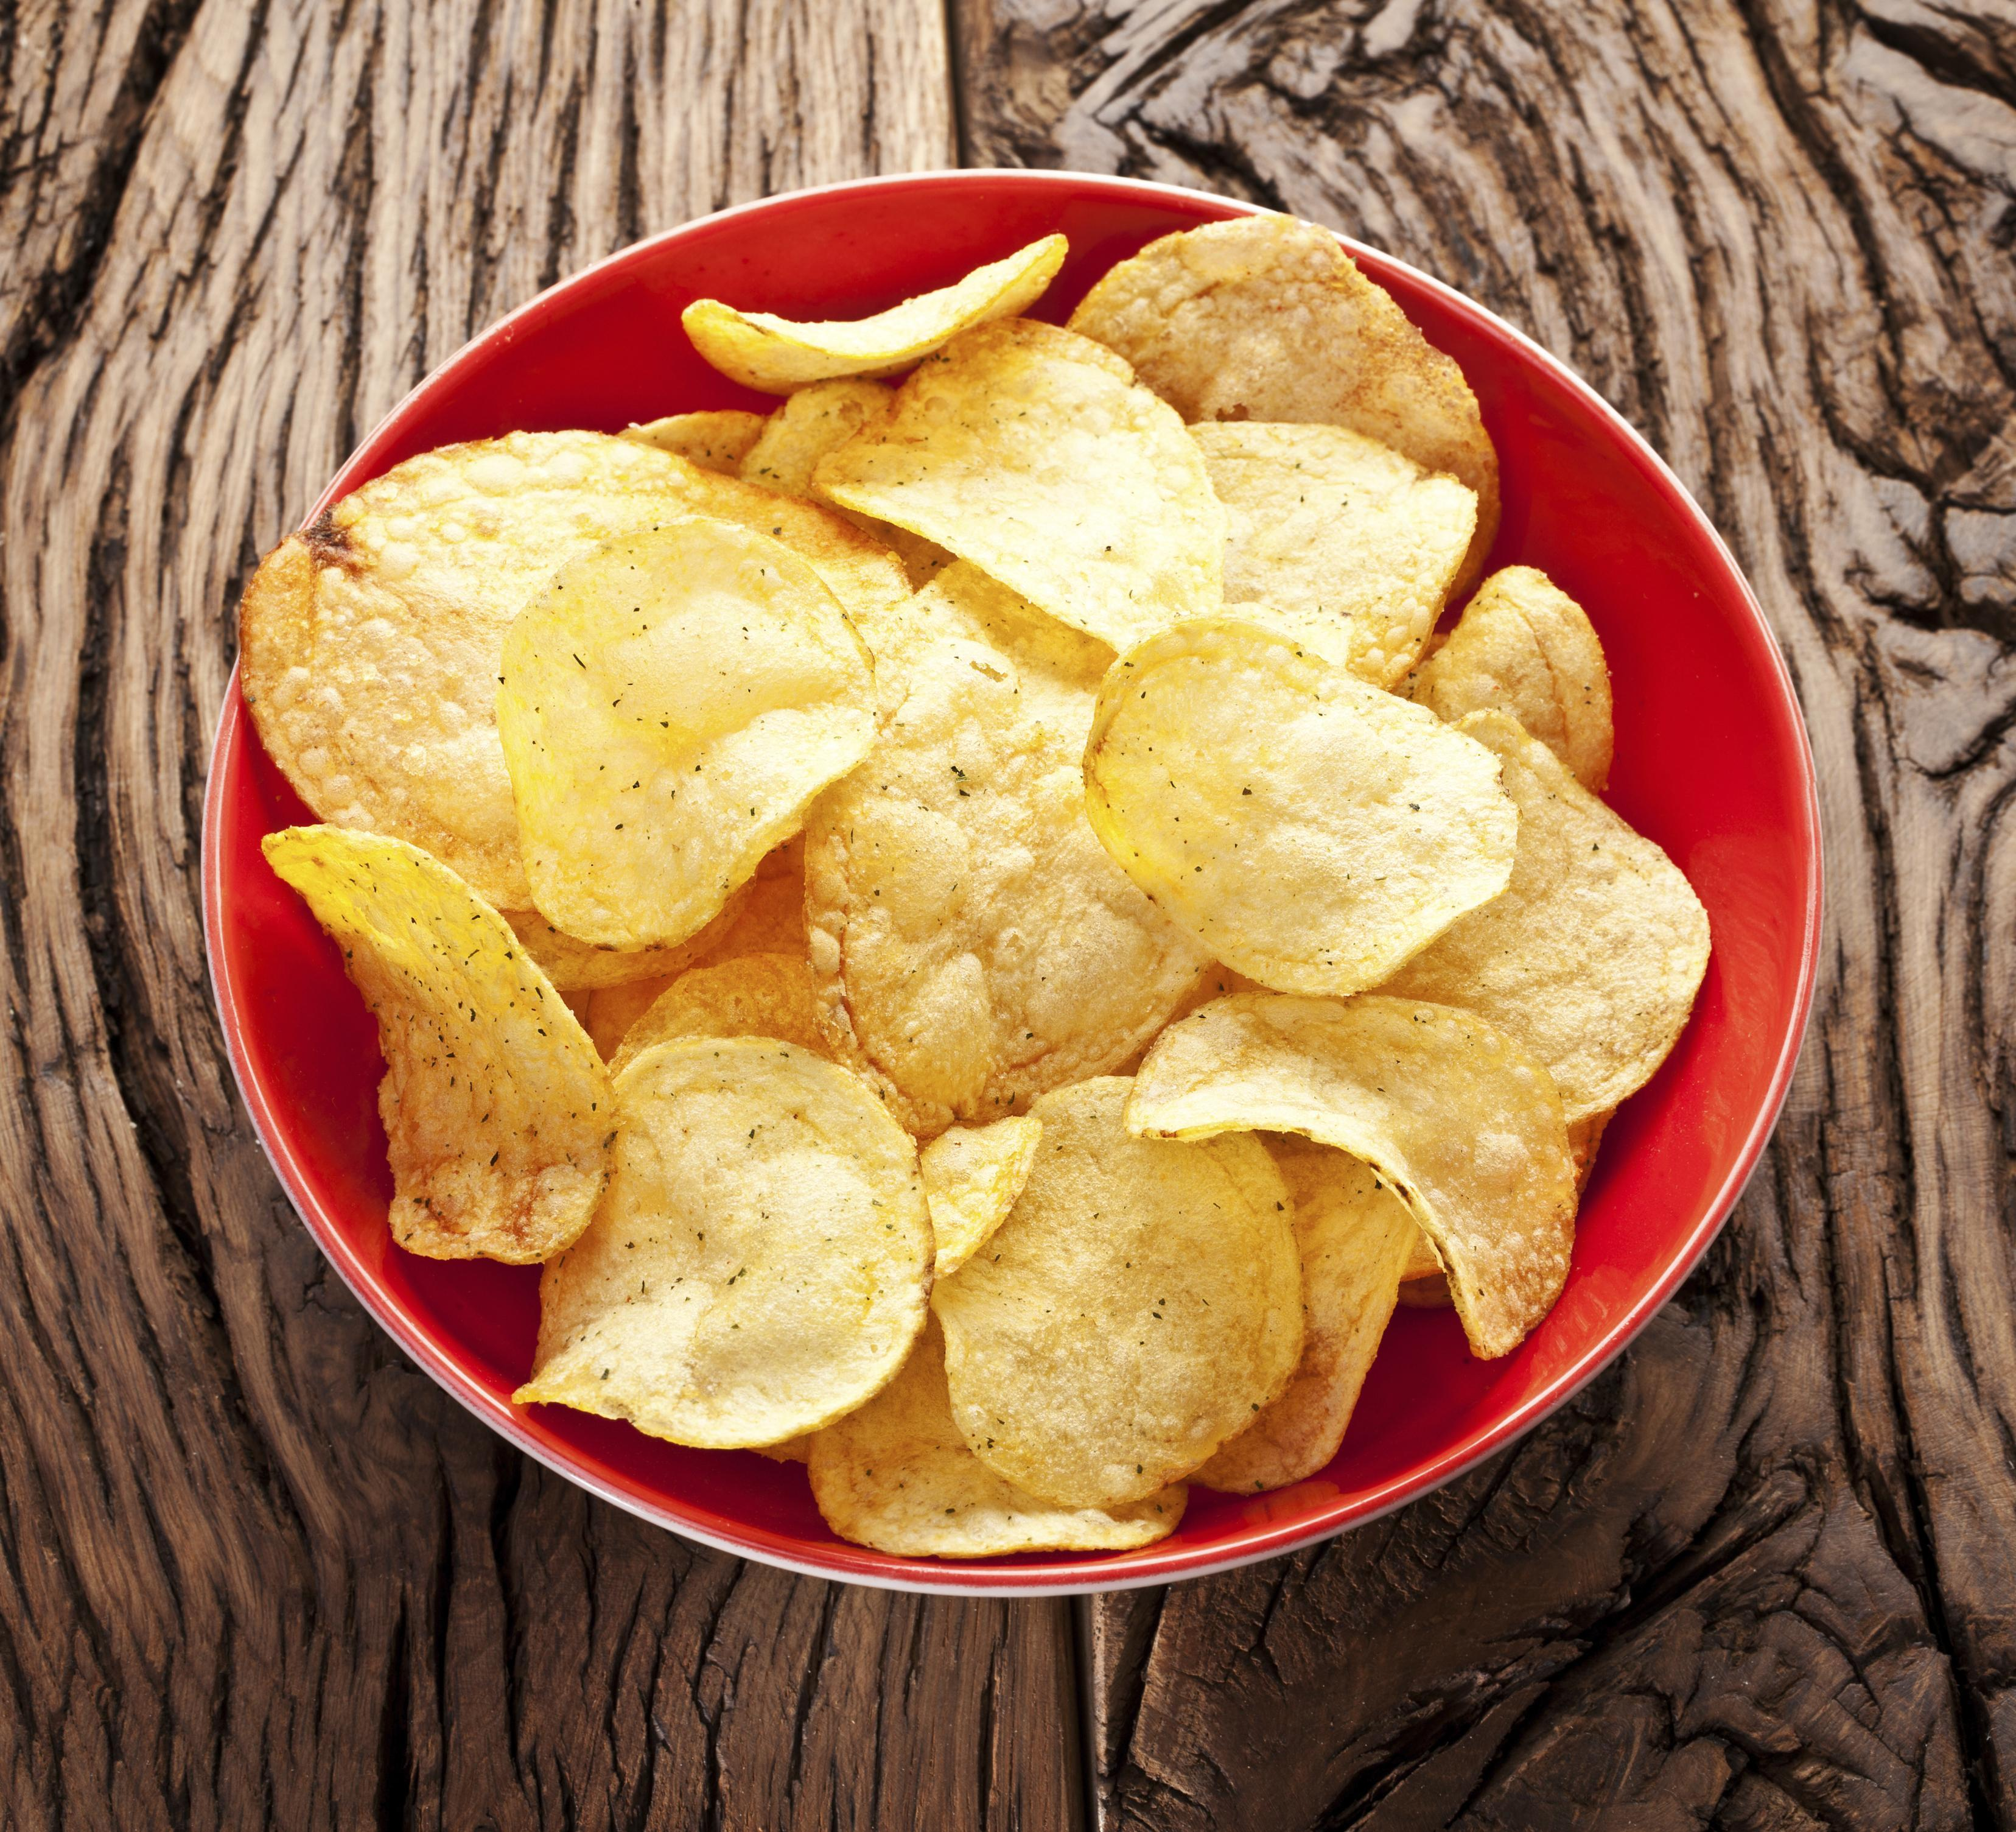 patato chips Freshdirect is the leading online grocery shopping service we provide fast grocery delivery to your home and office order today for delivery tomorrow.